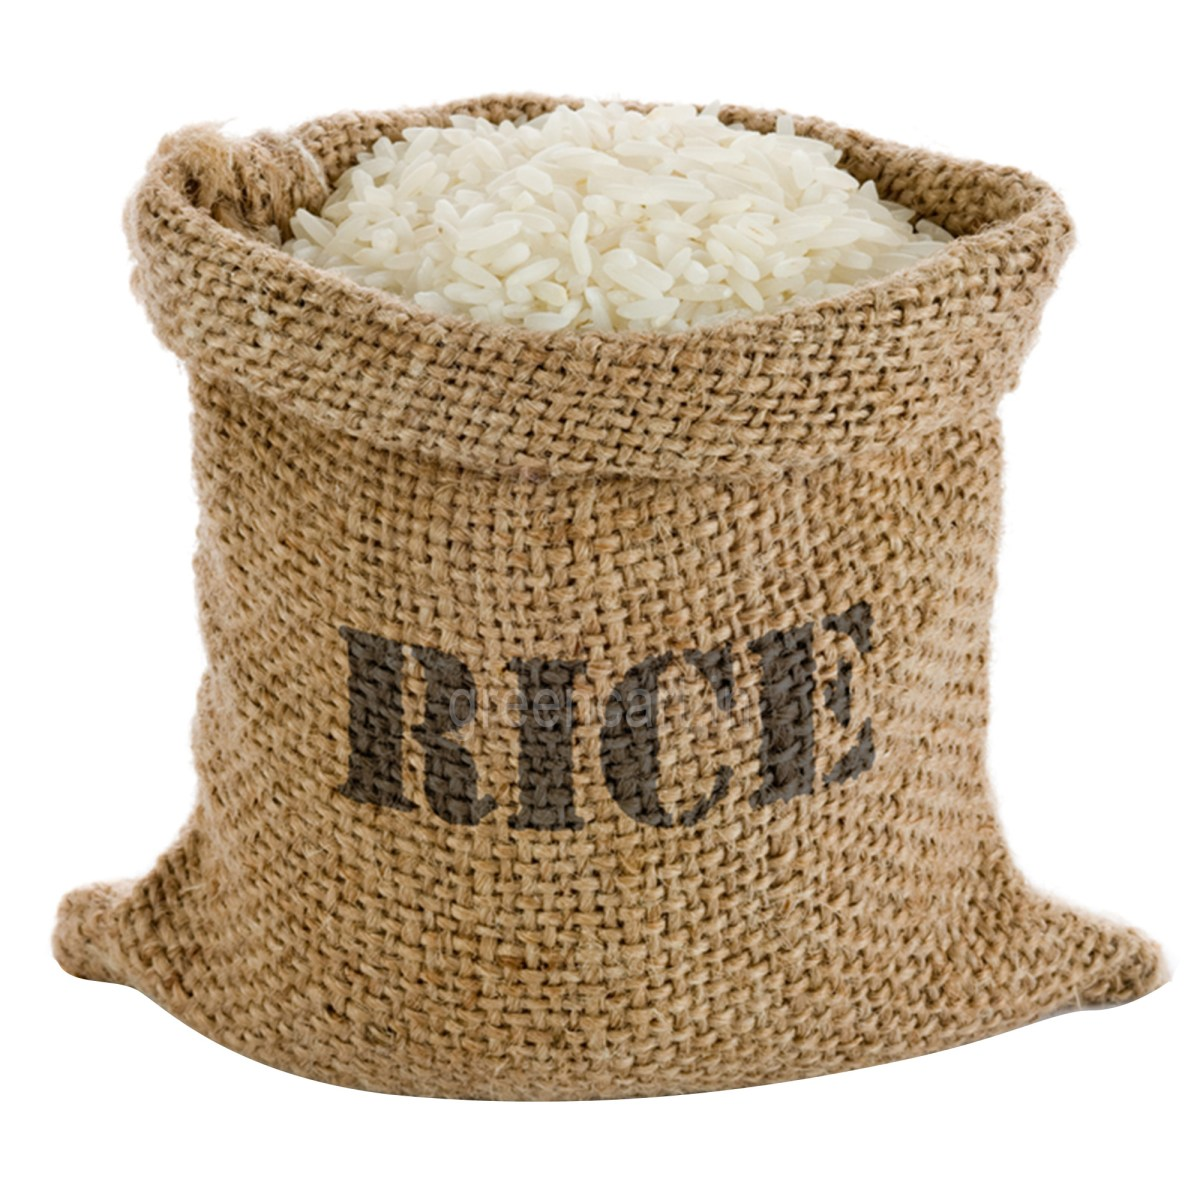 Man bags 2 years' imprisonment for stealing 10 bowls of rice